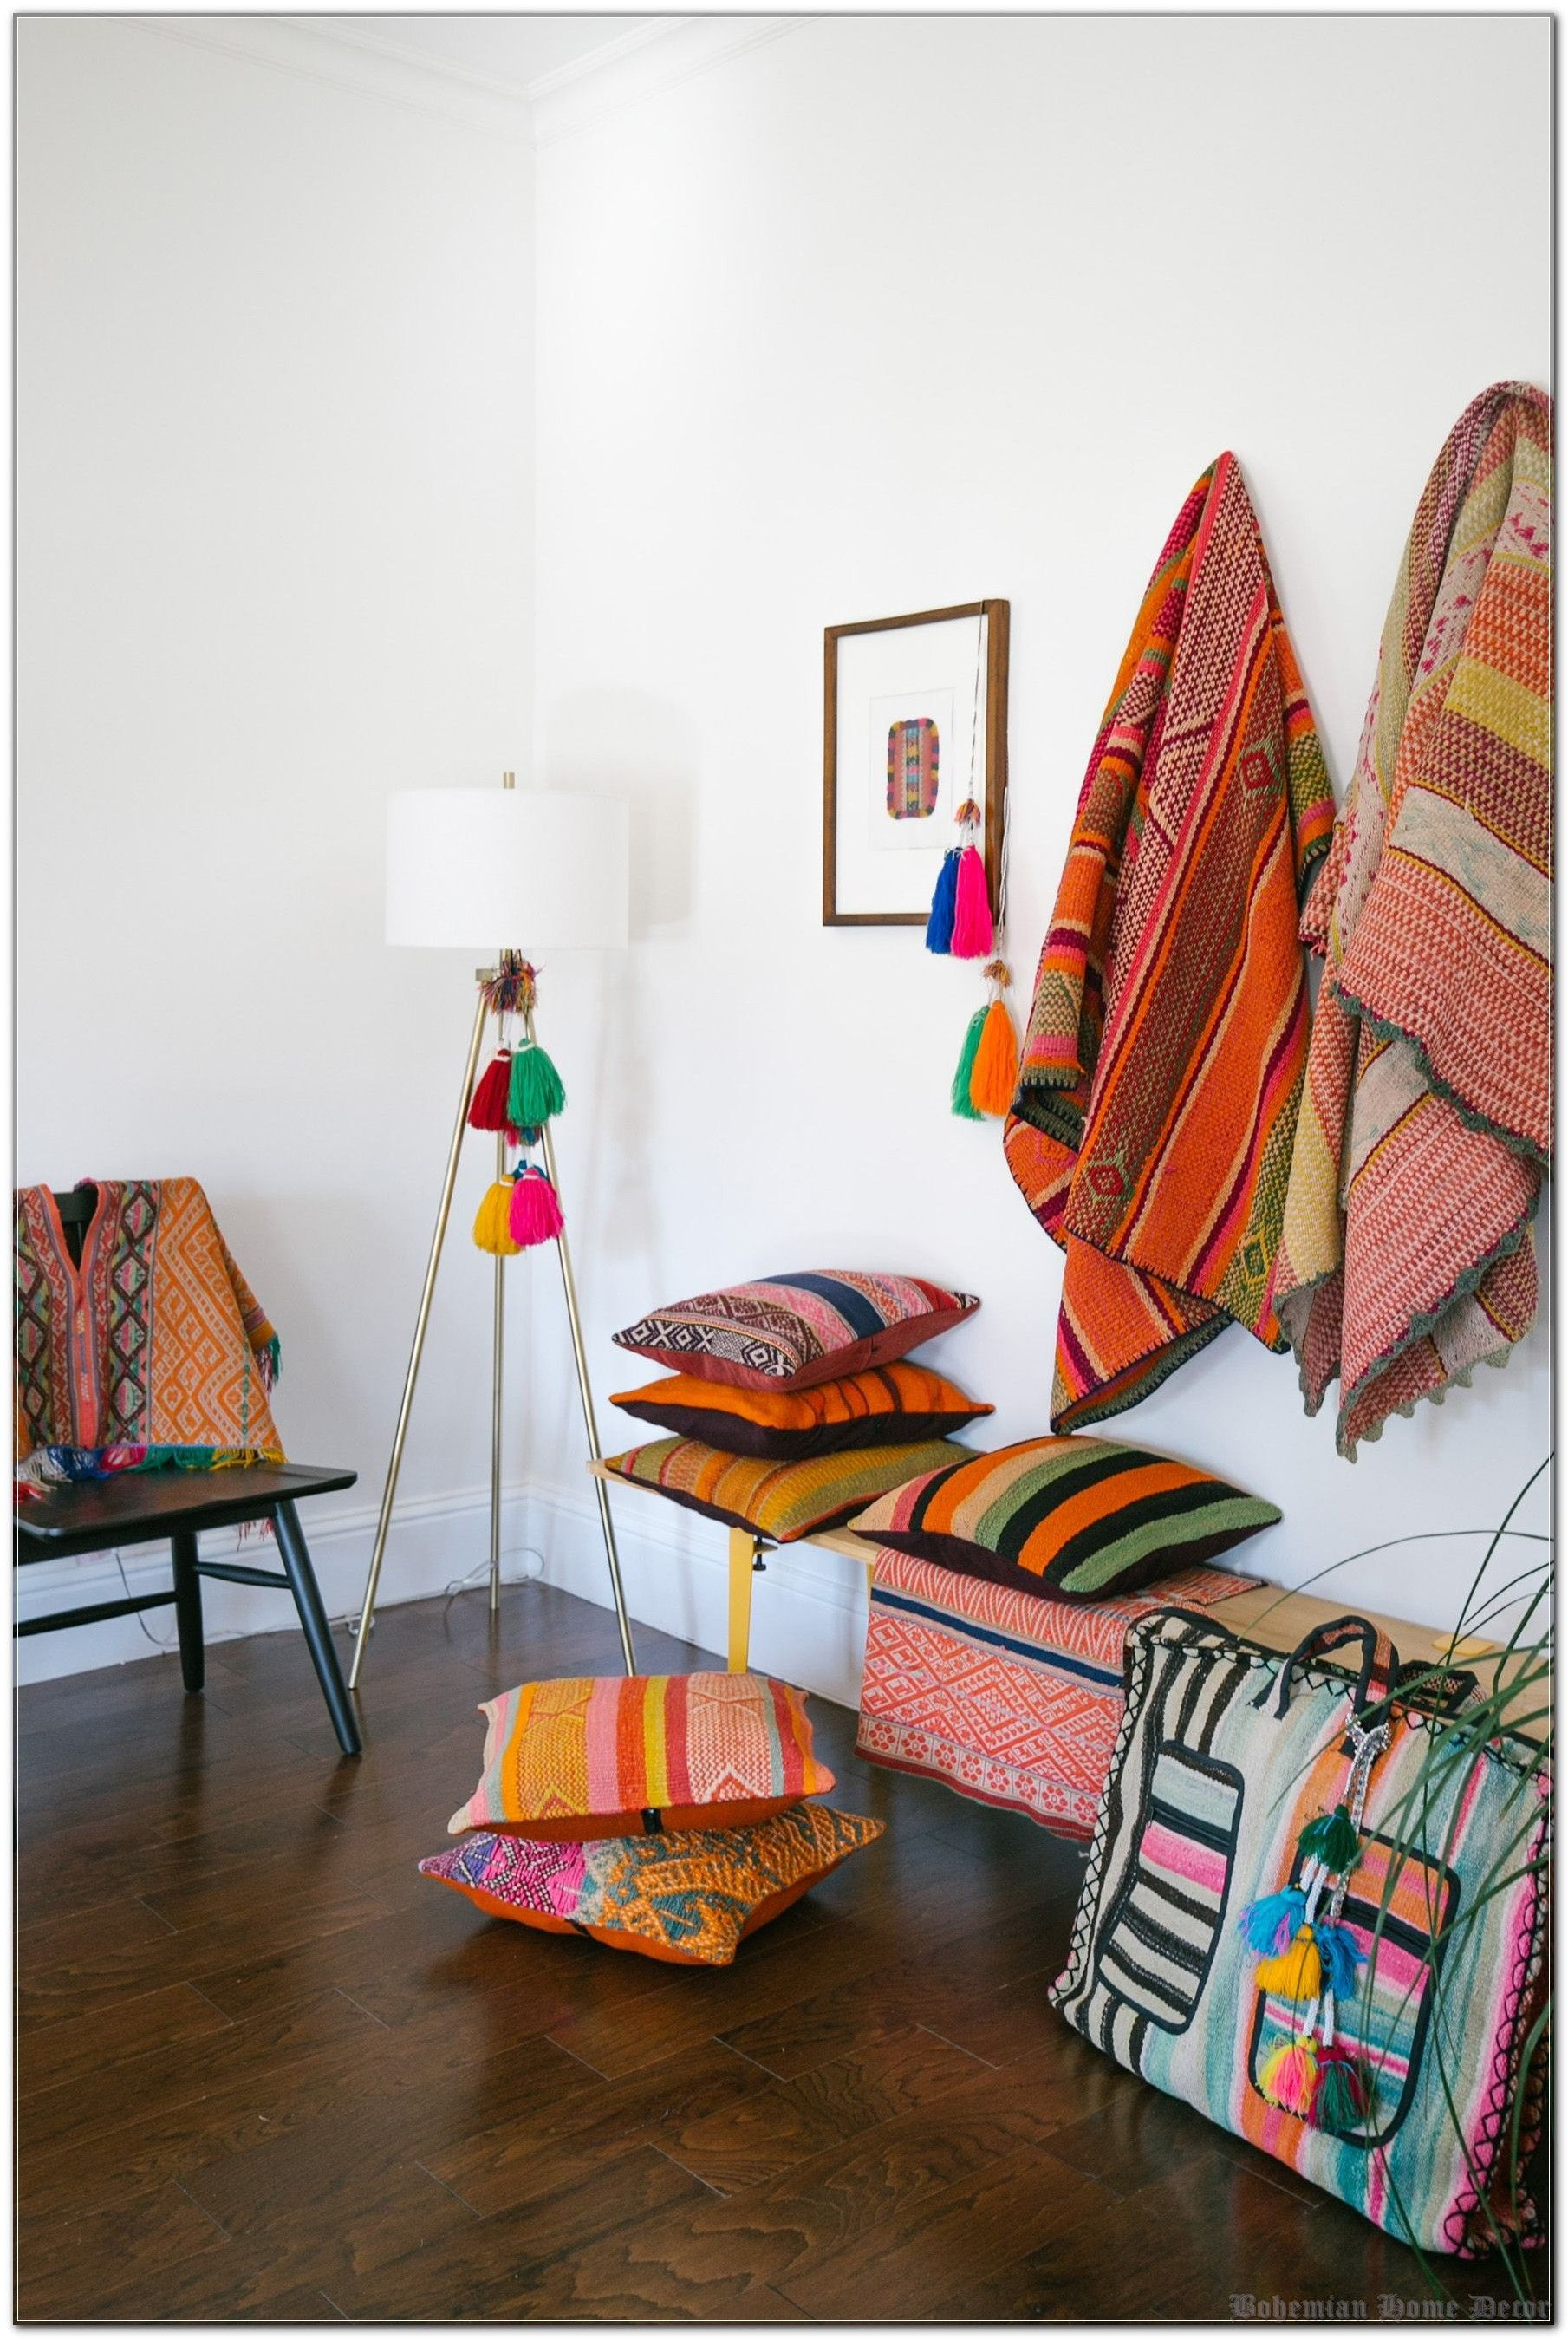 Add These 10 Mangets To Your Bohemian Home Decor